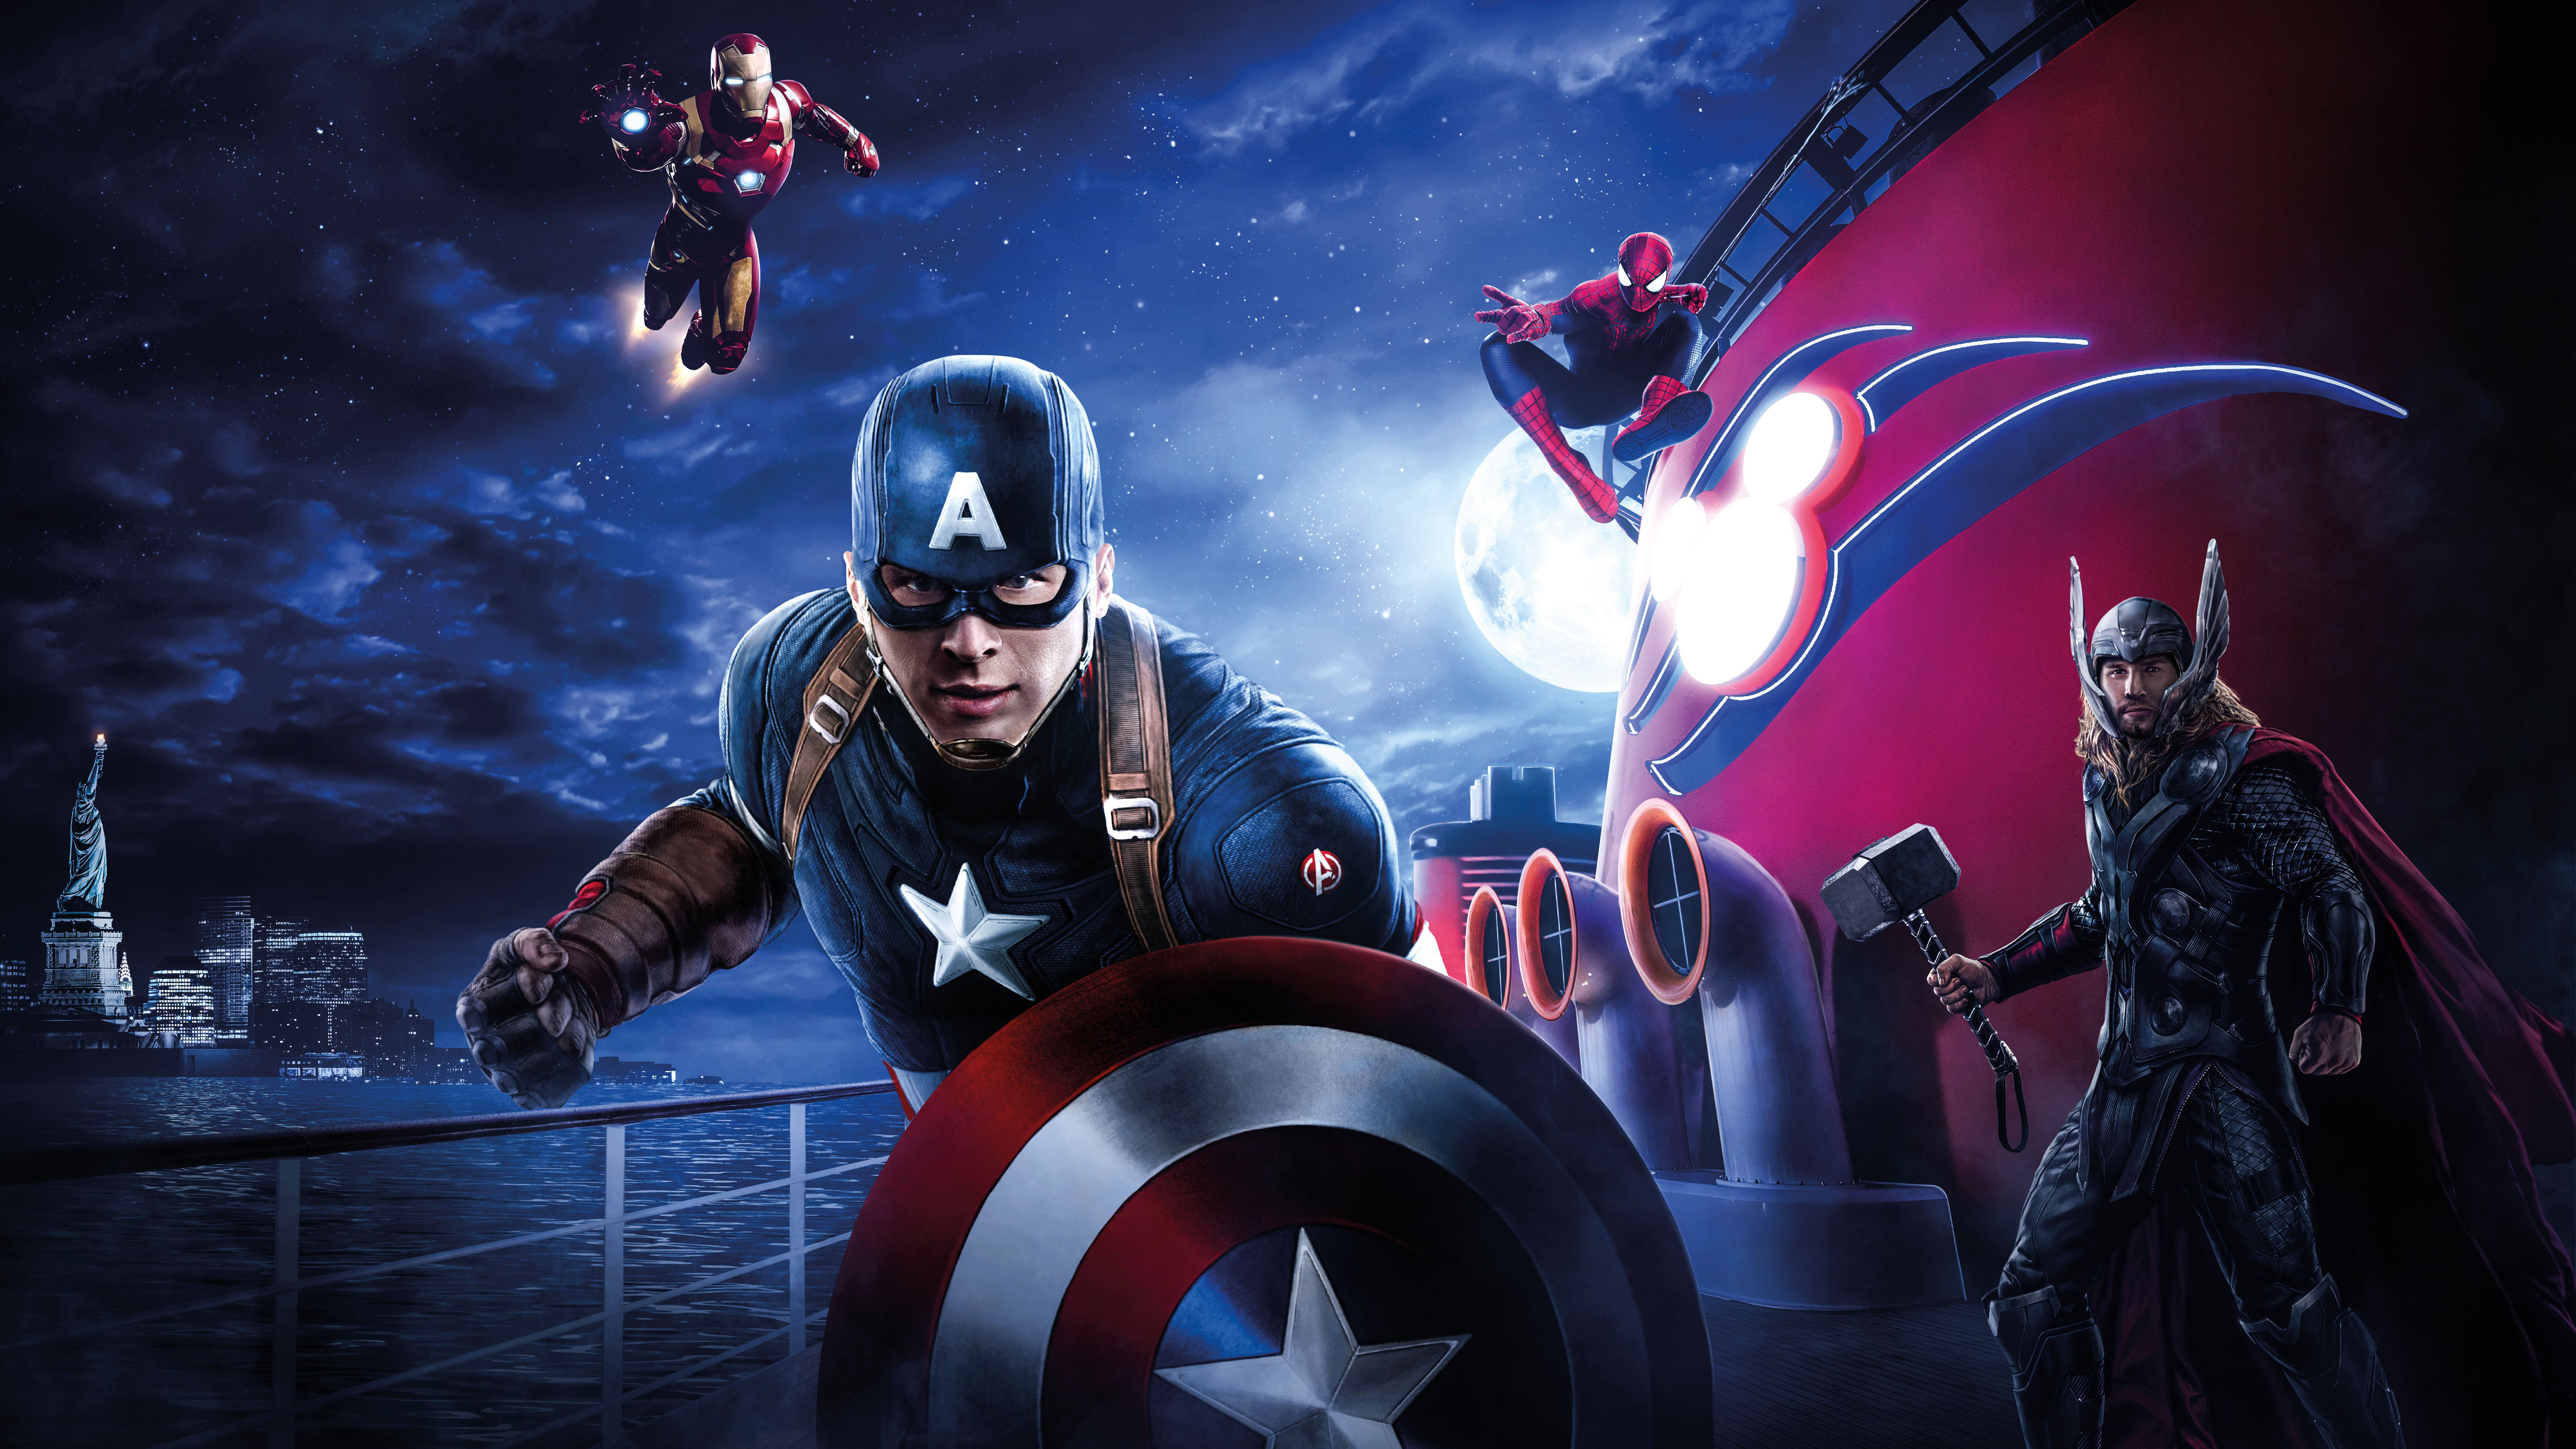 Spiderman Wallpaper 3d Android 3840x2160 Captain America Thor Iron Man Spiderman